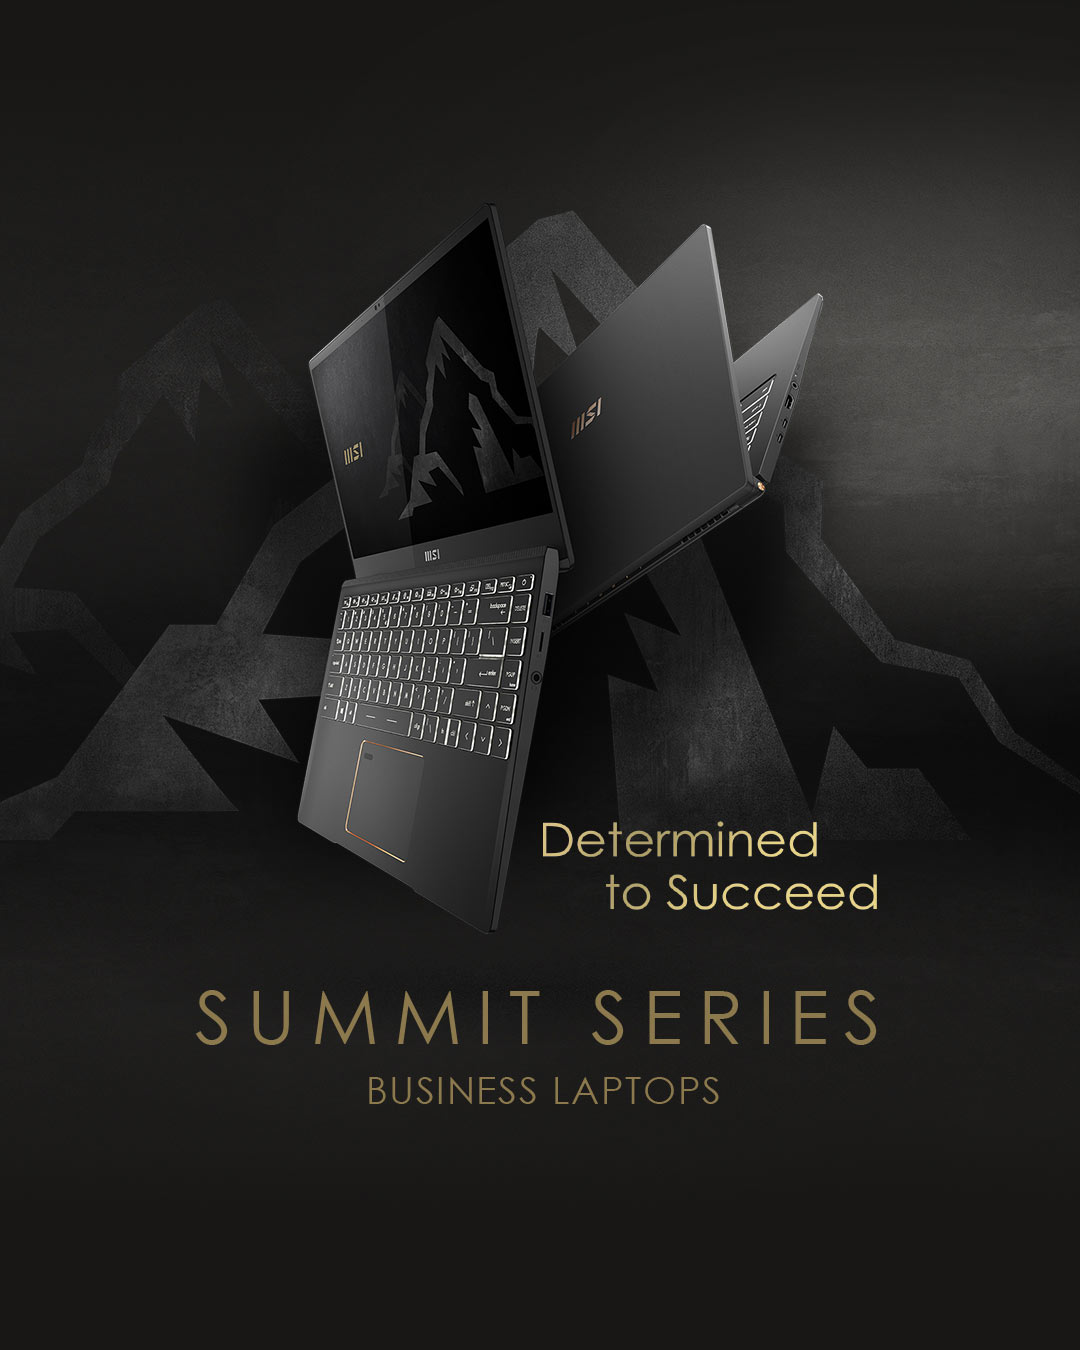 Summit E14 – Determined to Succeed